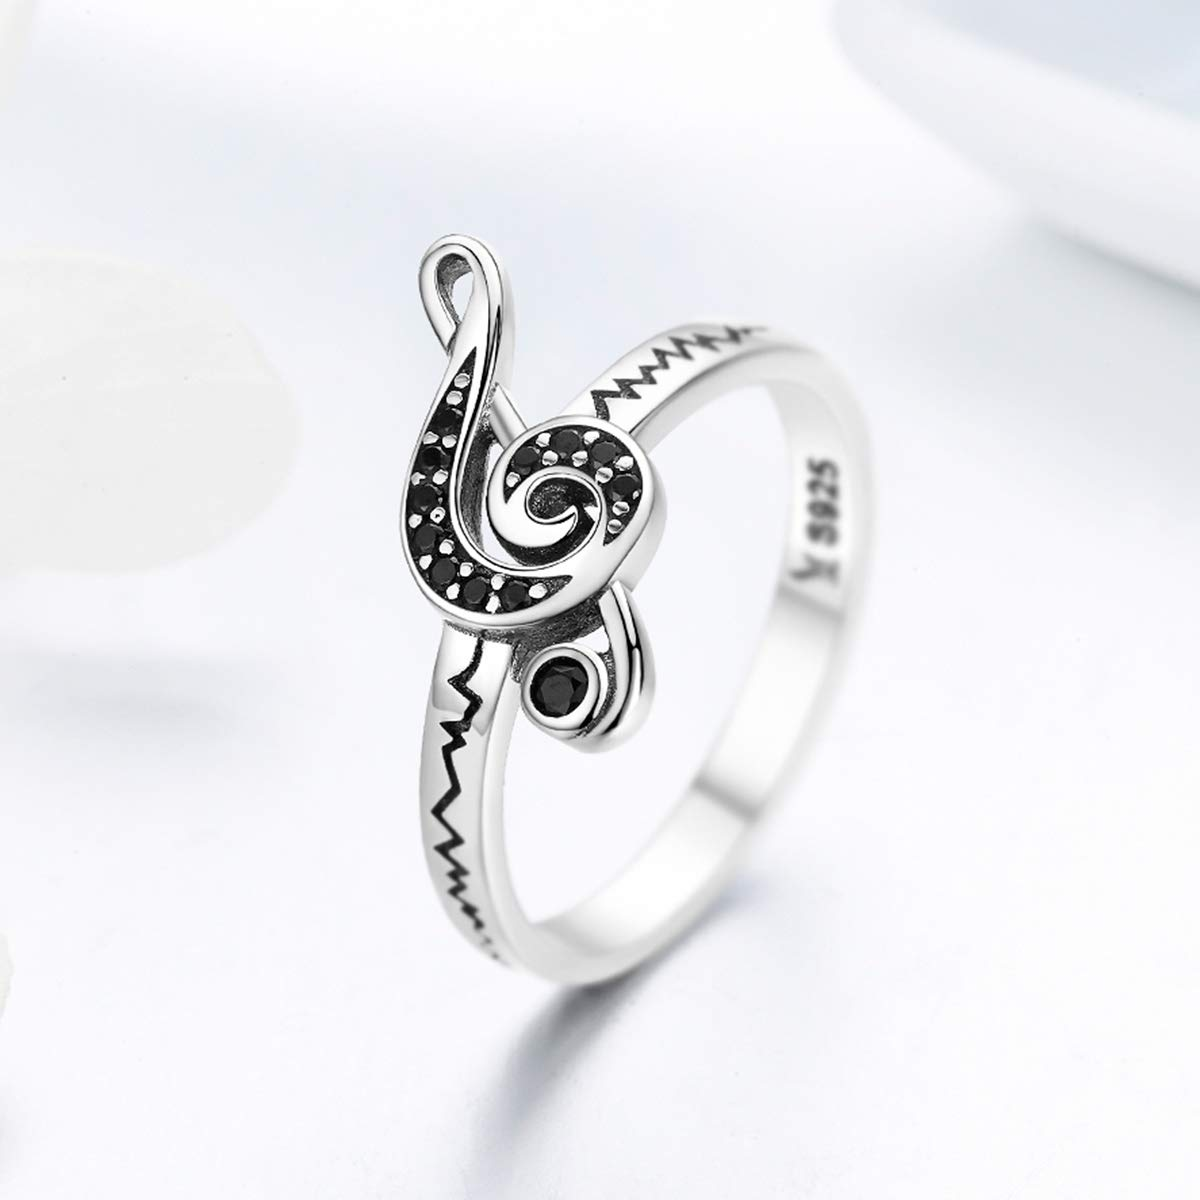 Everbling Musical note G-clef 925 Sterling Silver Ring Black CZ